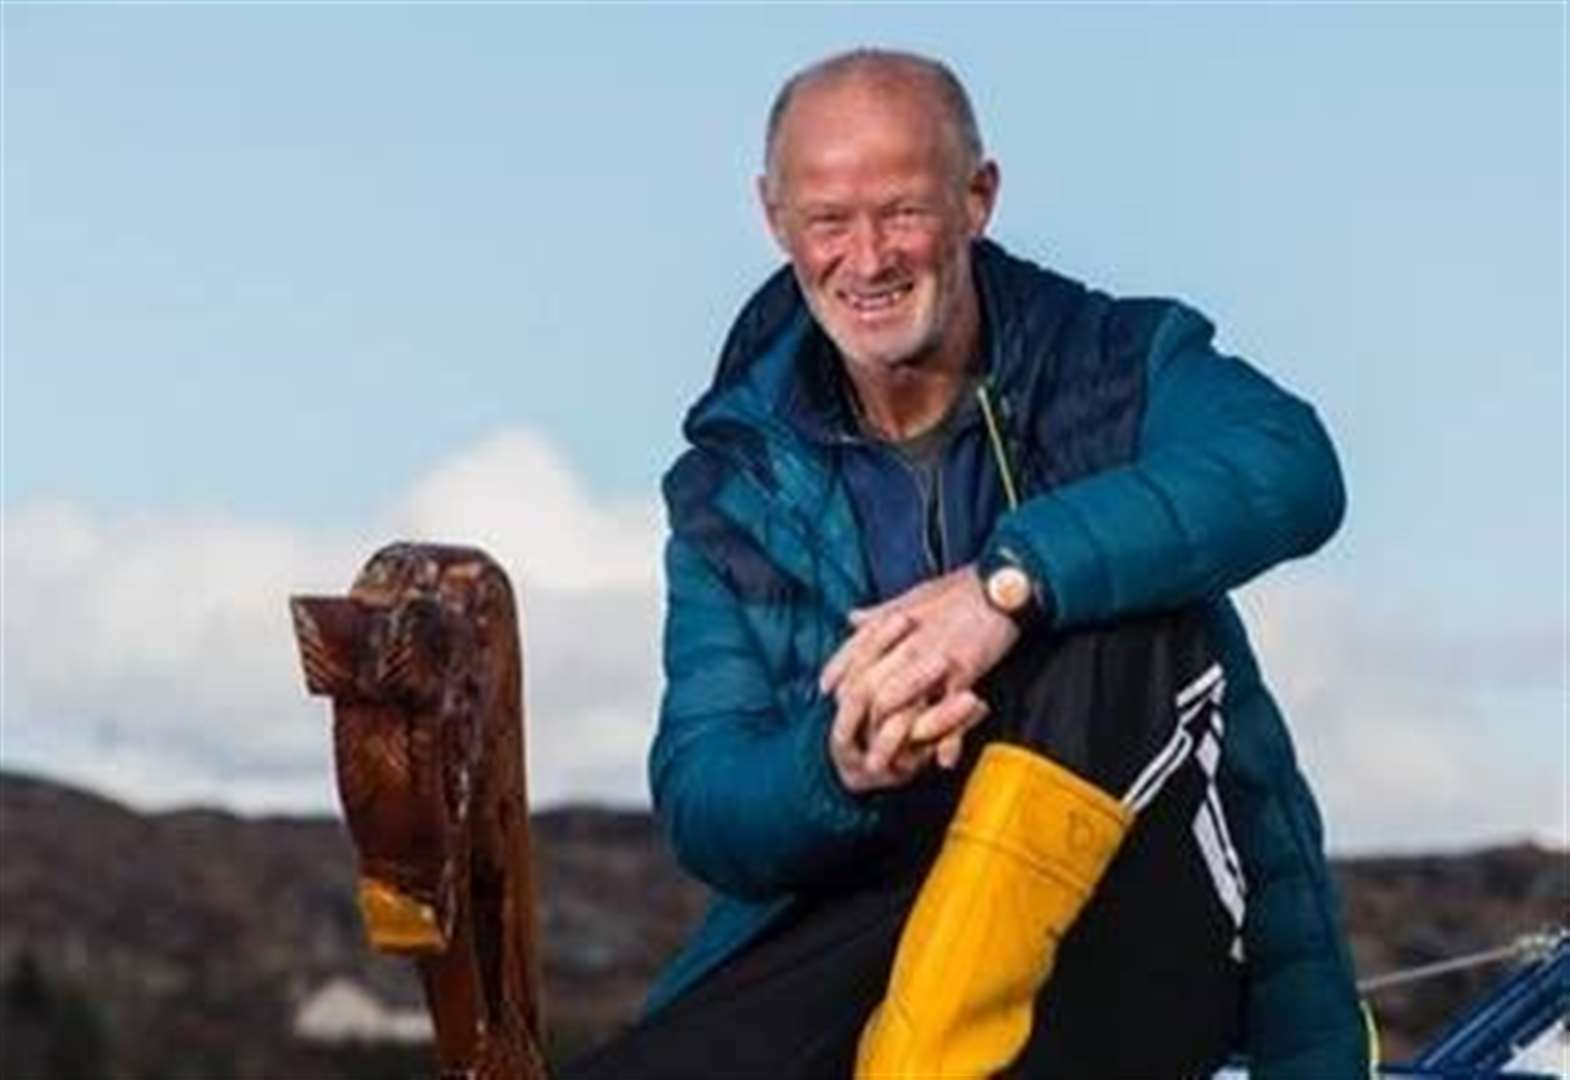 Lochinver man completes Atlantic row - on land!